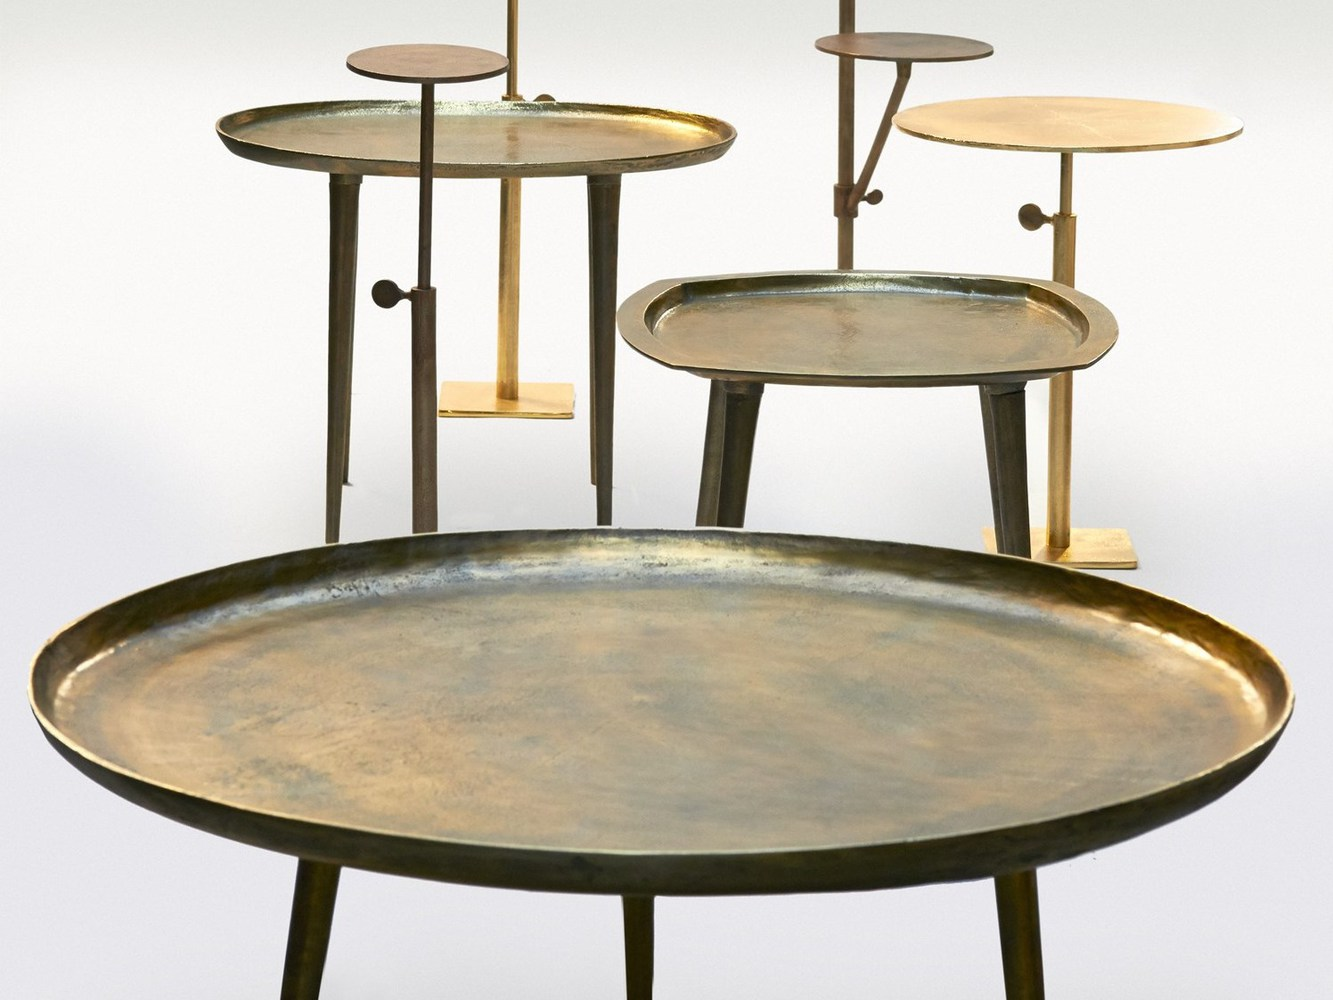 side table, formats divers, laiton et cuivre